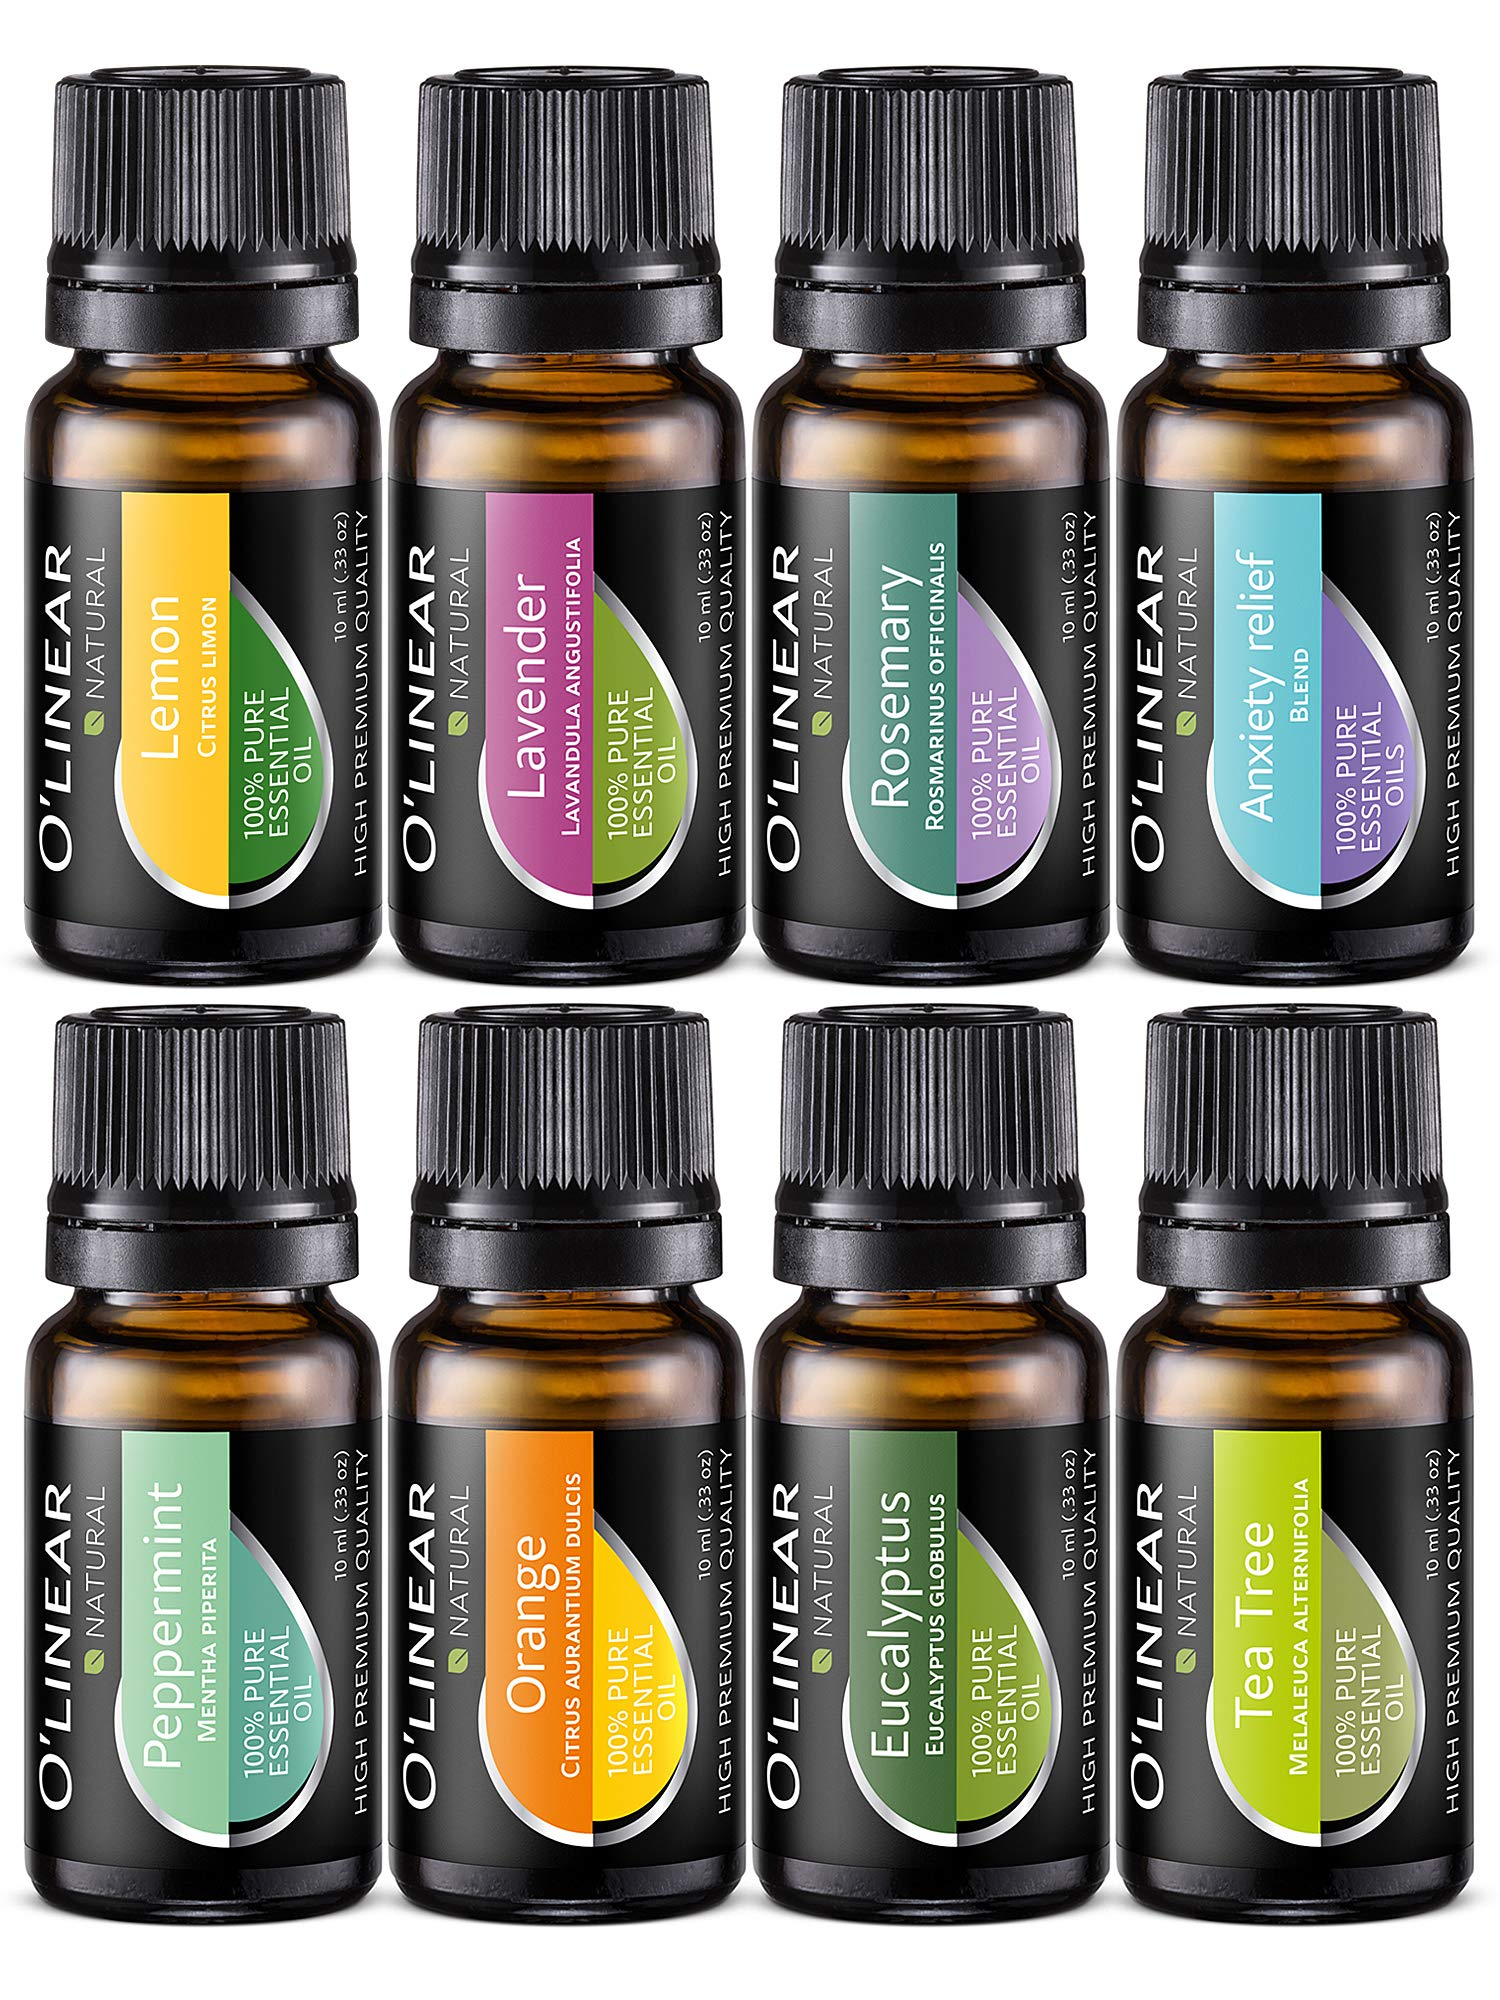 Essential Oil Aromatherapy Set - Pure Therapeutic Grade Oils Lavender, Peppermint, Rosemary, Orange, Tea Tree, Eucalyptus, Lemon, Anxiety Relief Blend Kit for Women & Men by O'linear